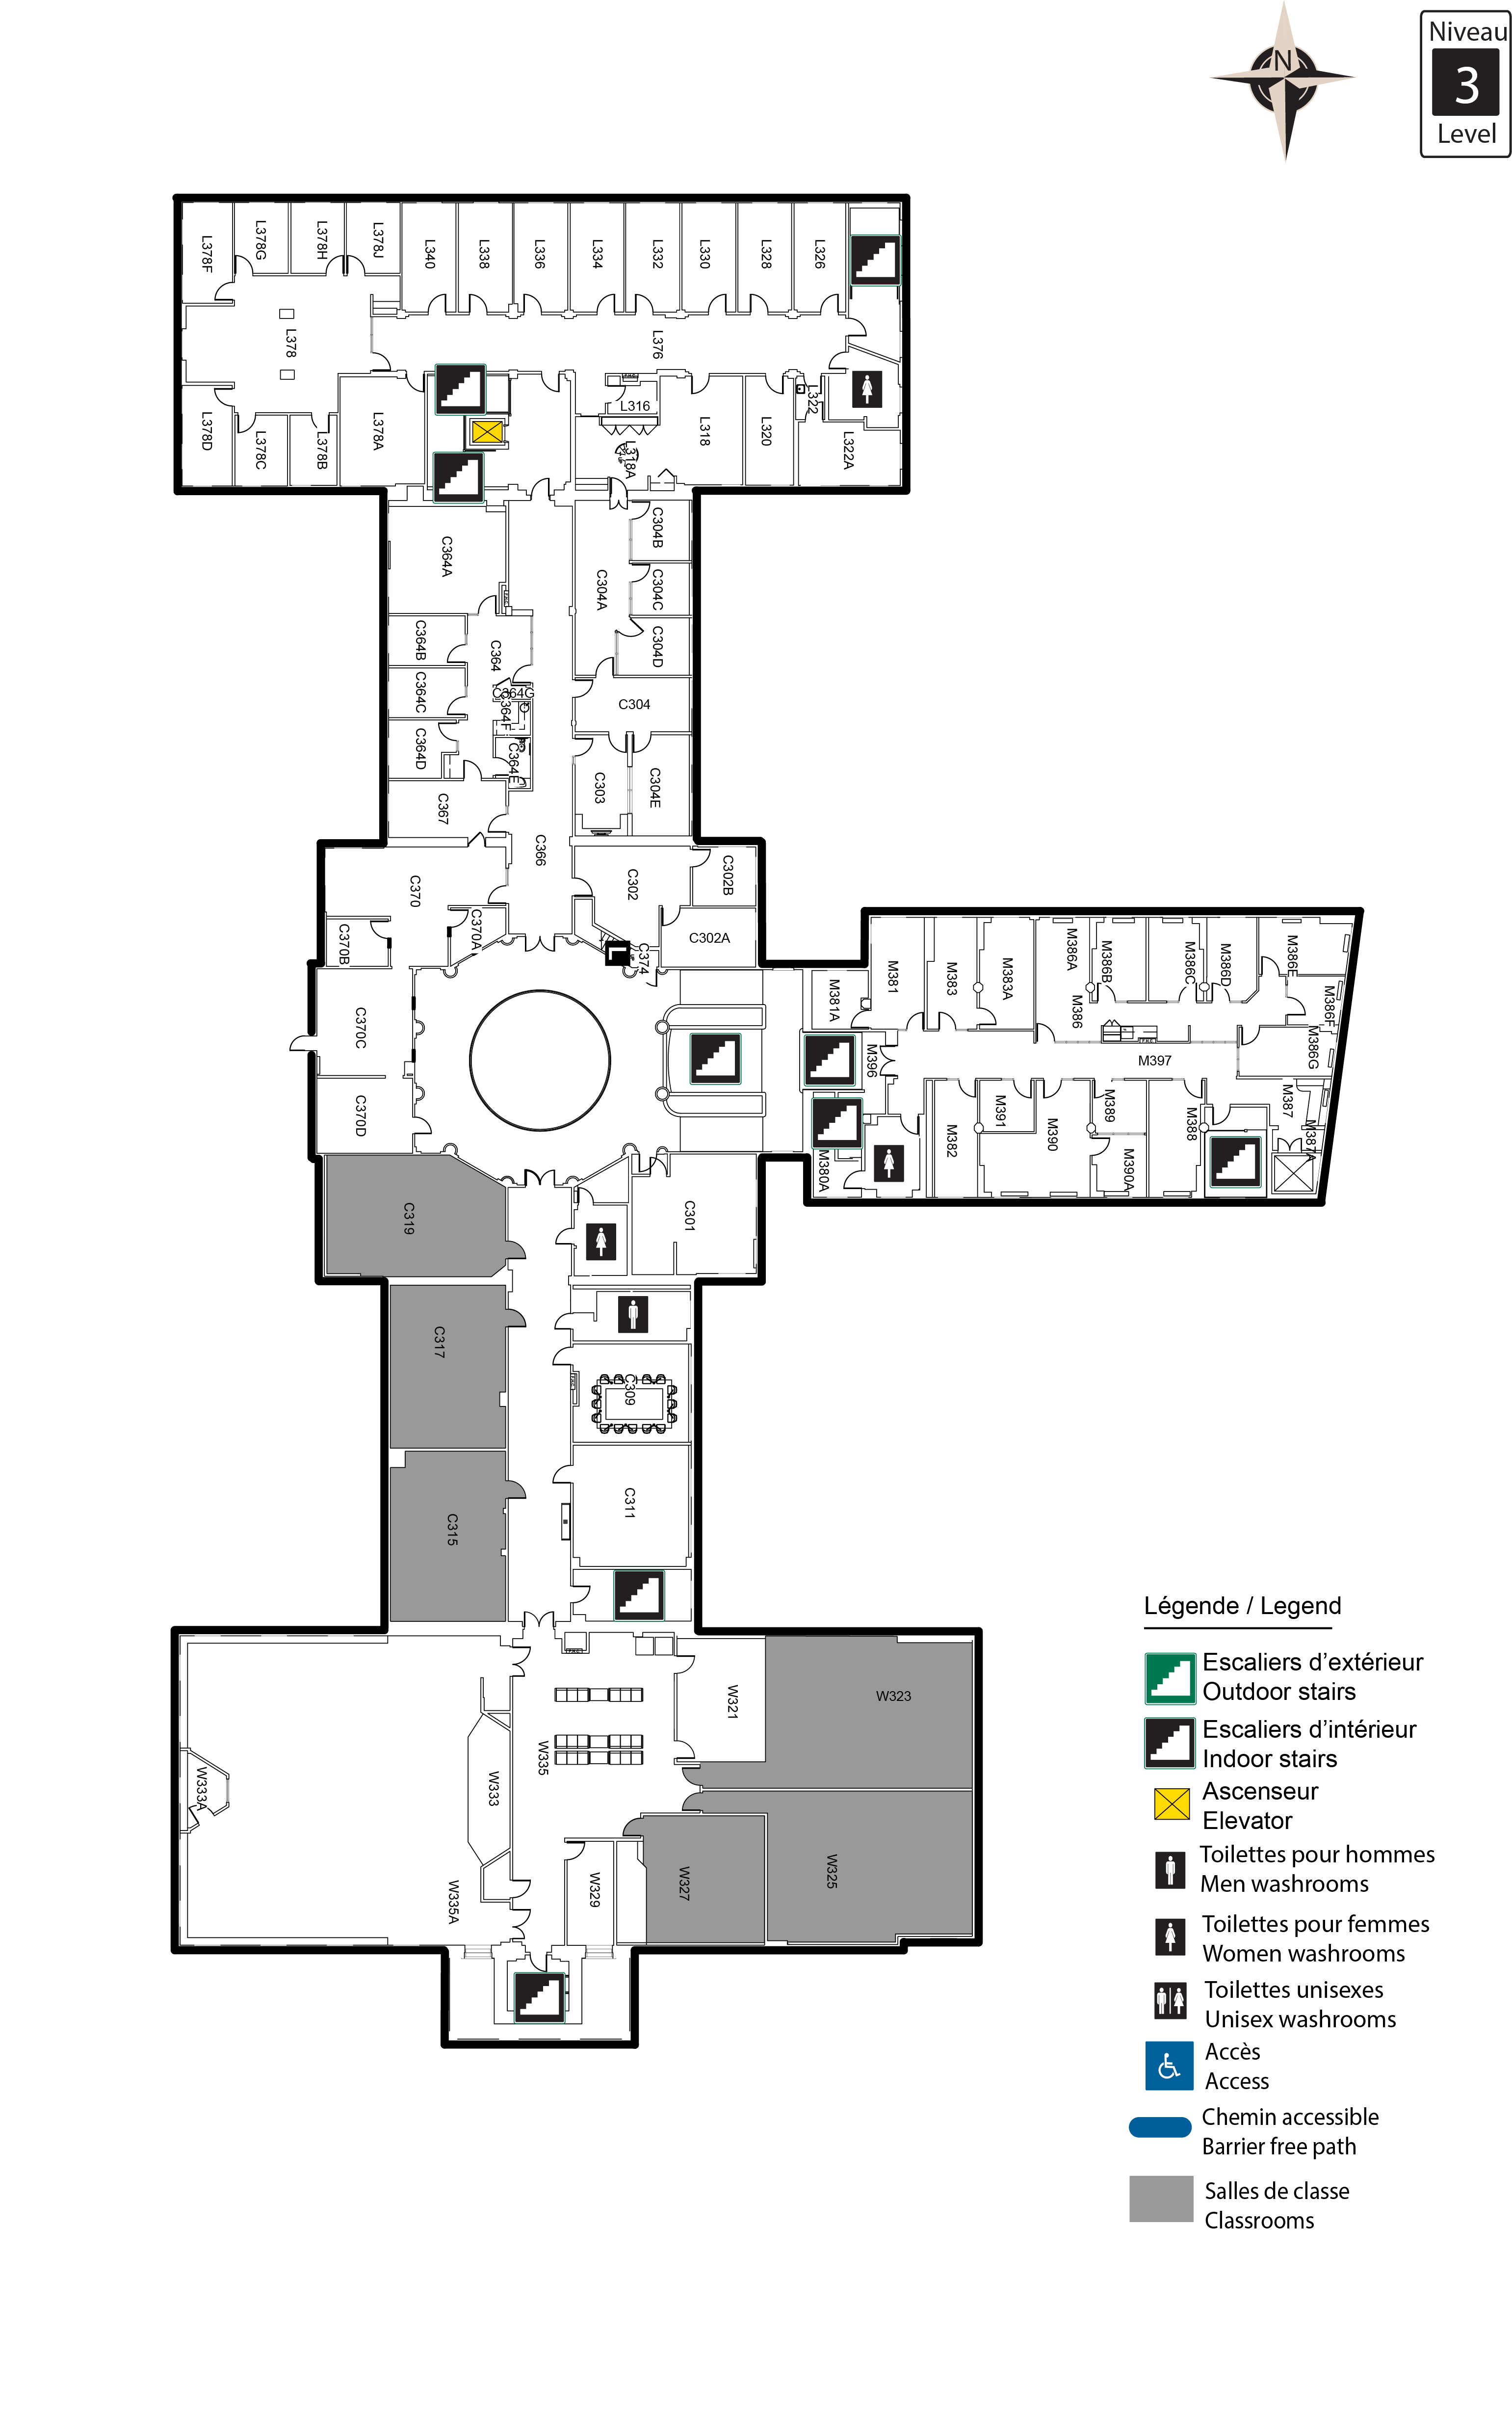 Accessible map - Tabaret 3